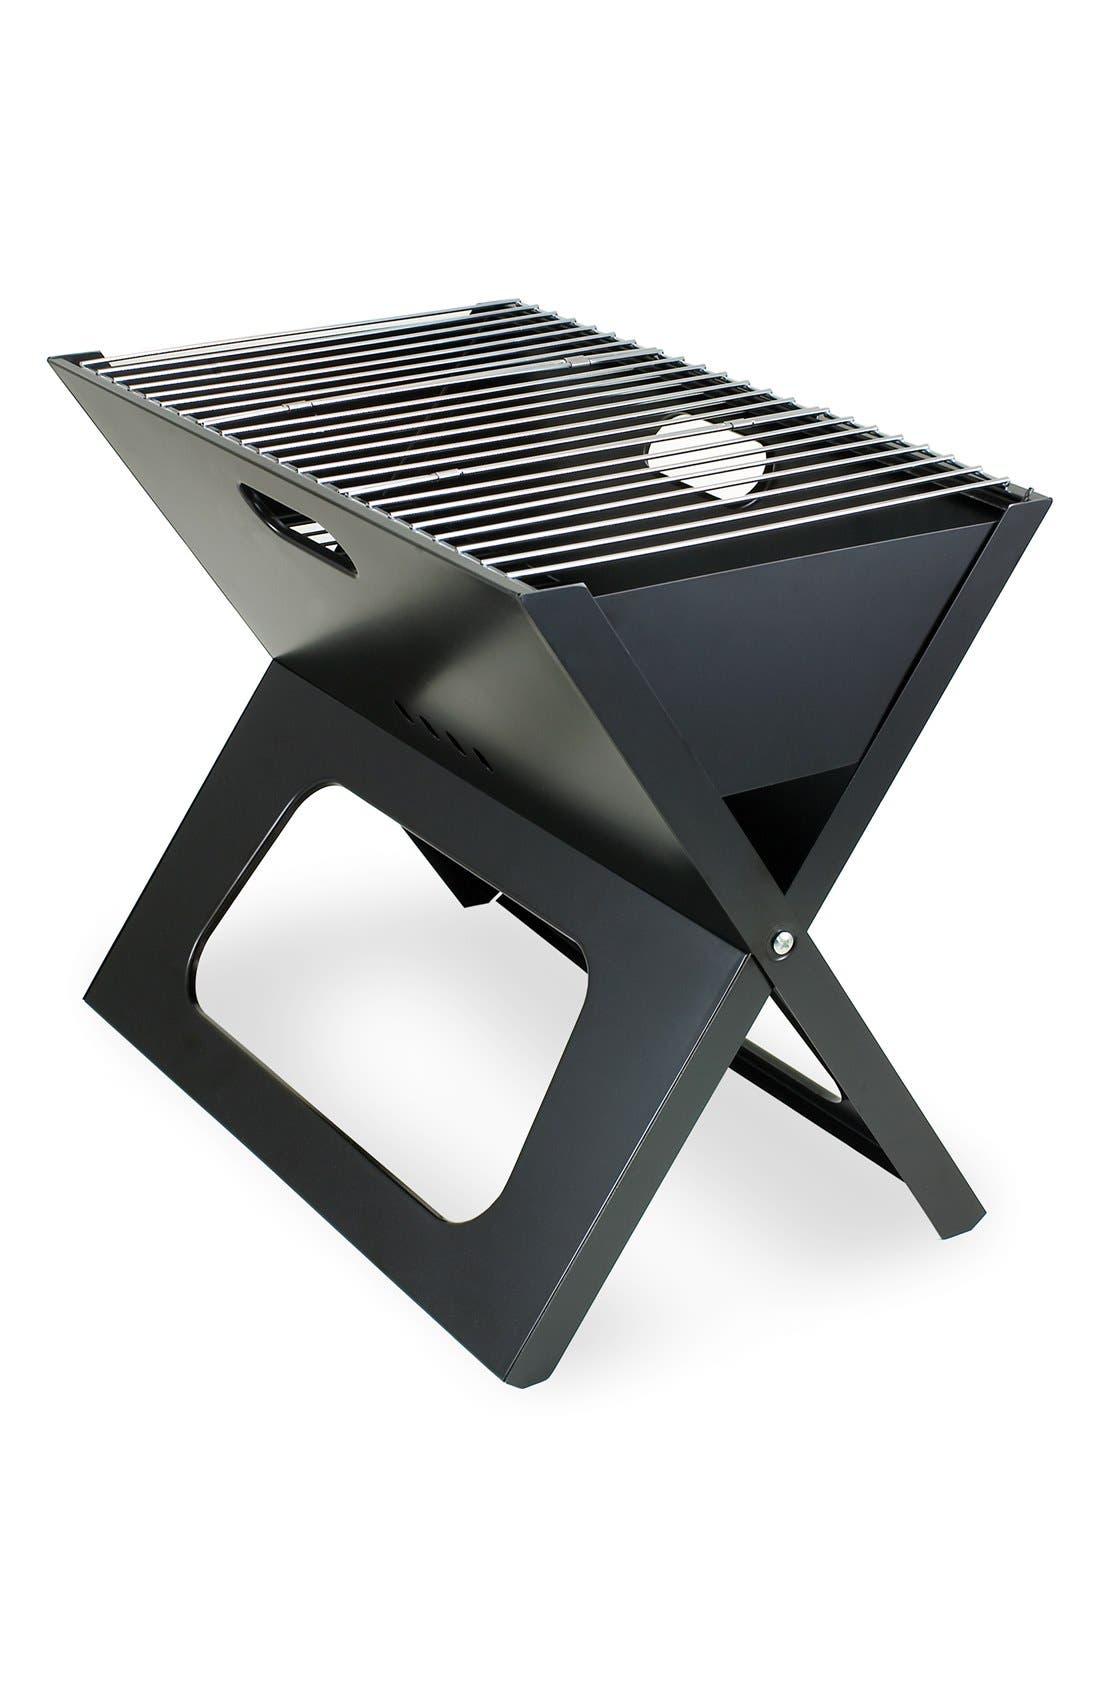 'X-Grill' Portable Fold-Up BBQ Grill,                             Main thumbnail 1, color,